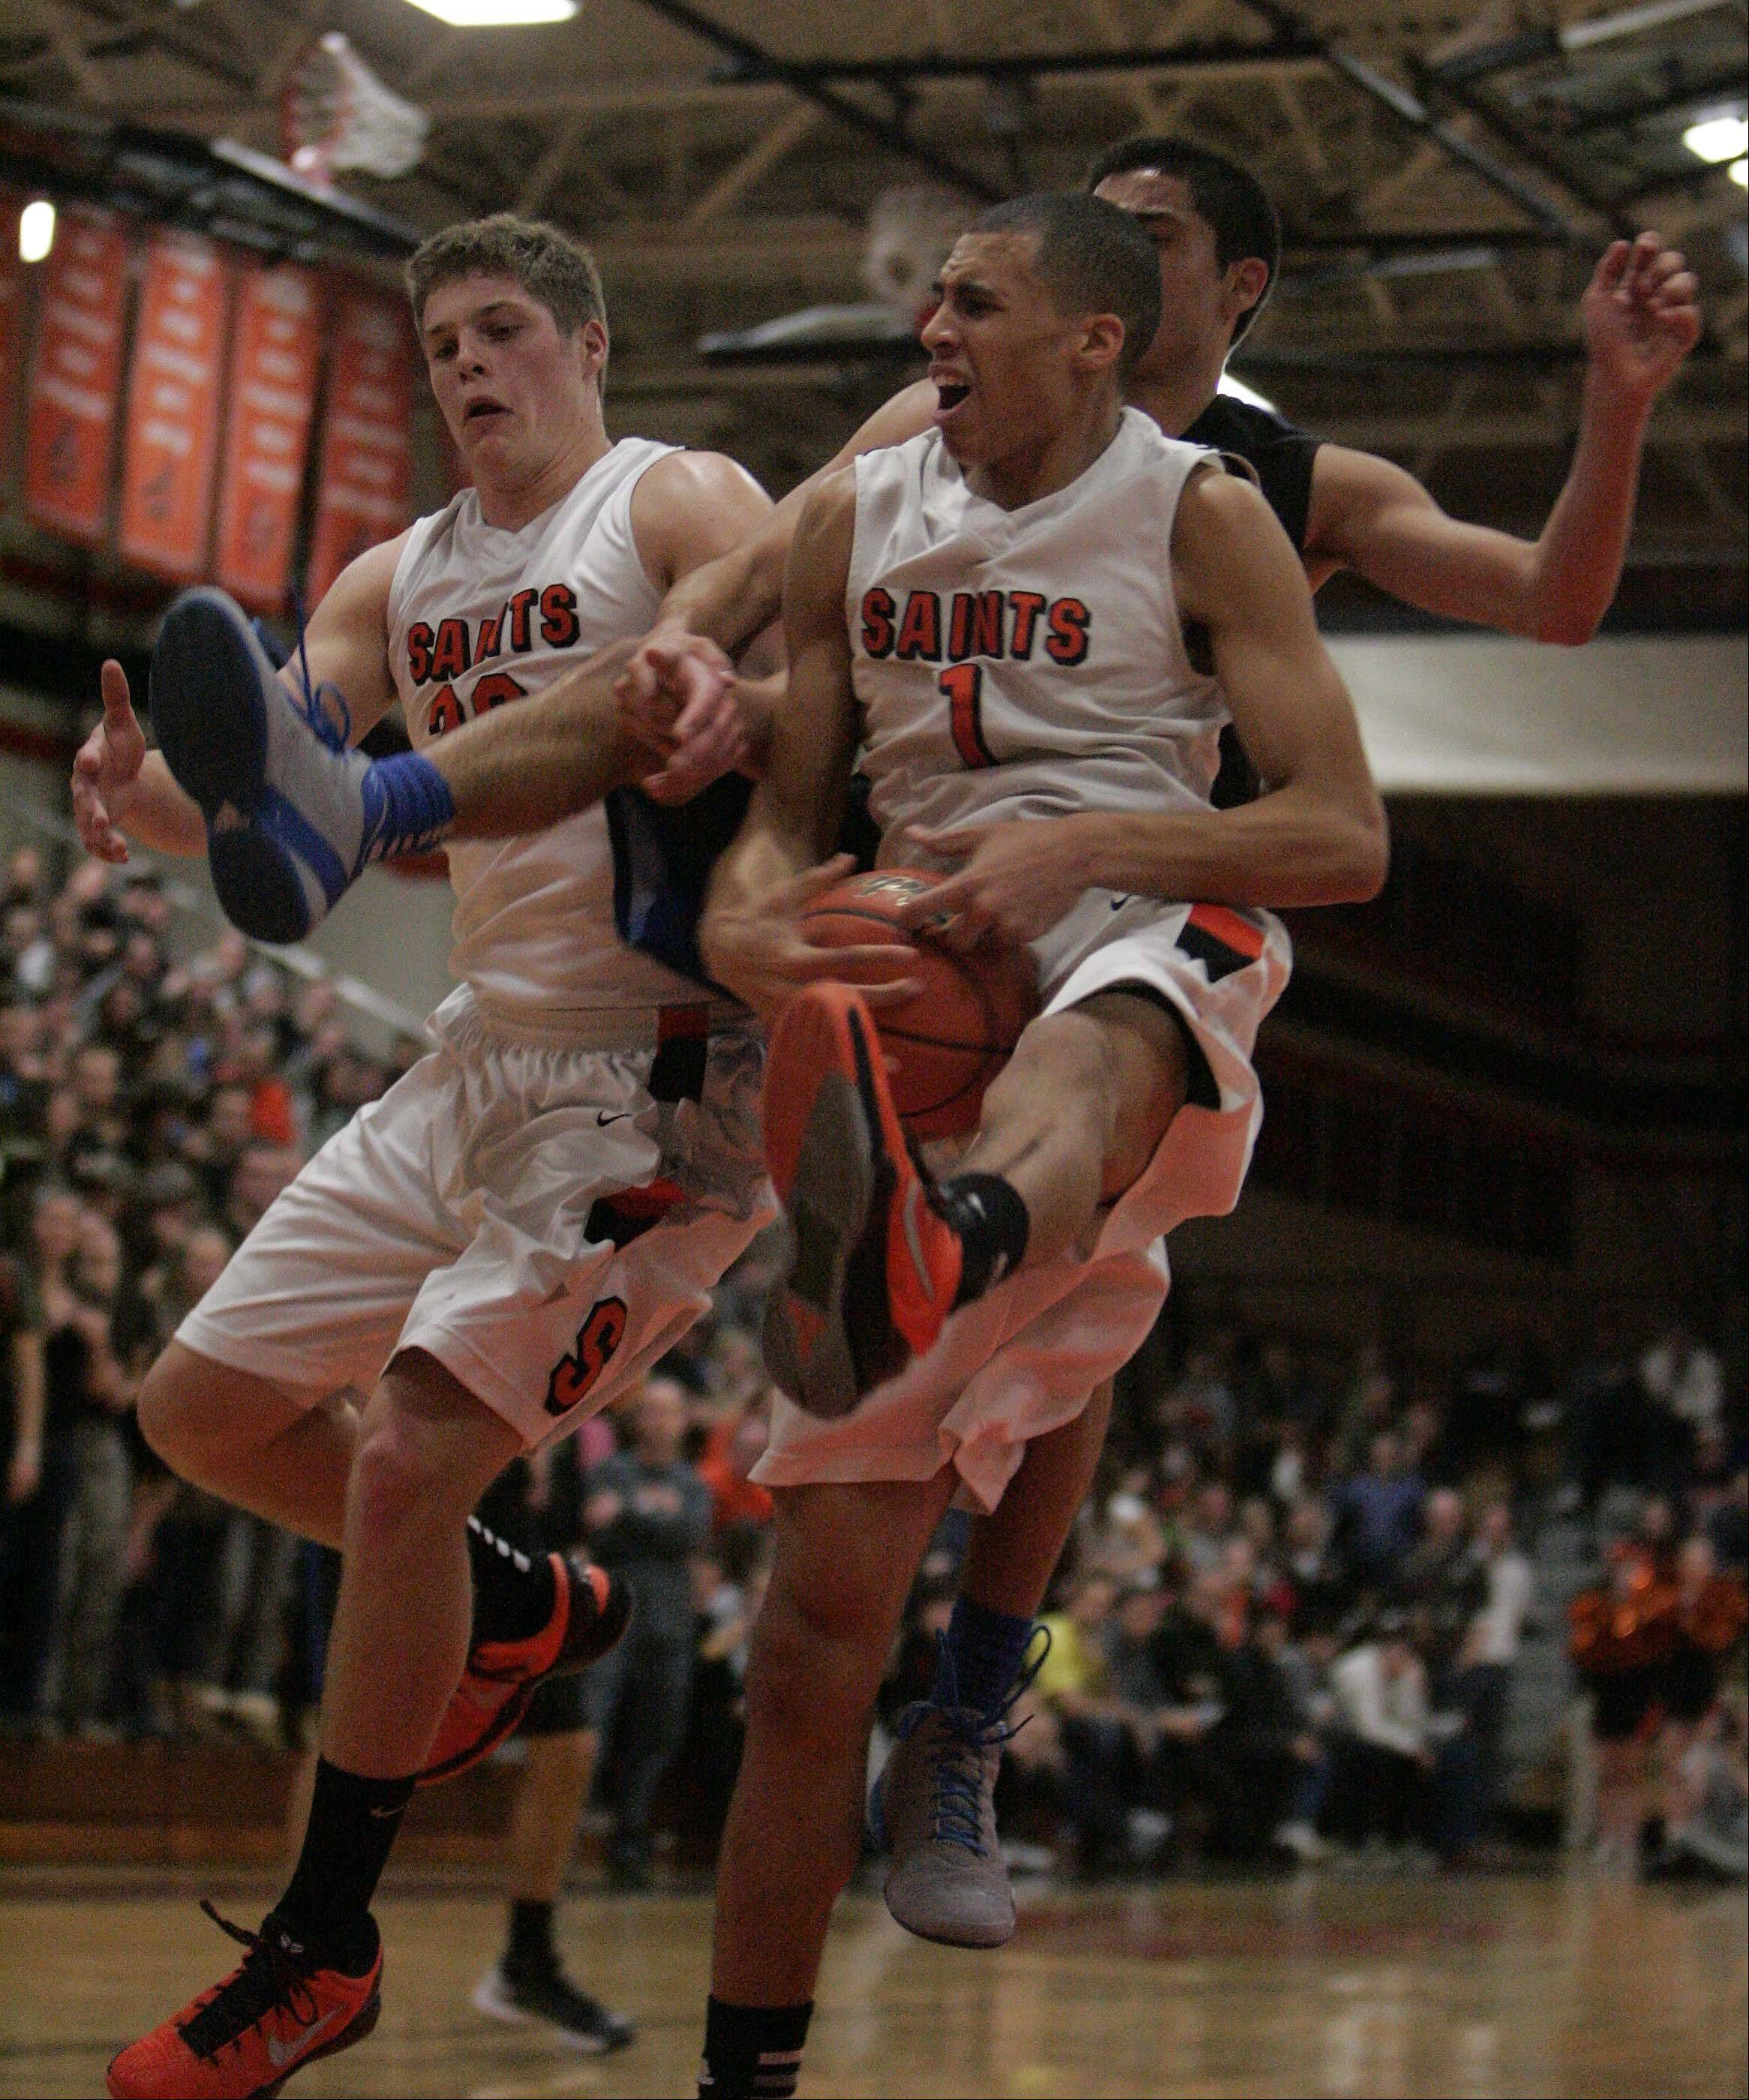 Images from the St. Charles North vs. St. Charles East boys basketball game Friday, January 18, 2013.